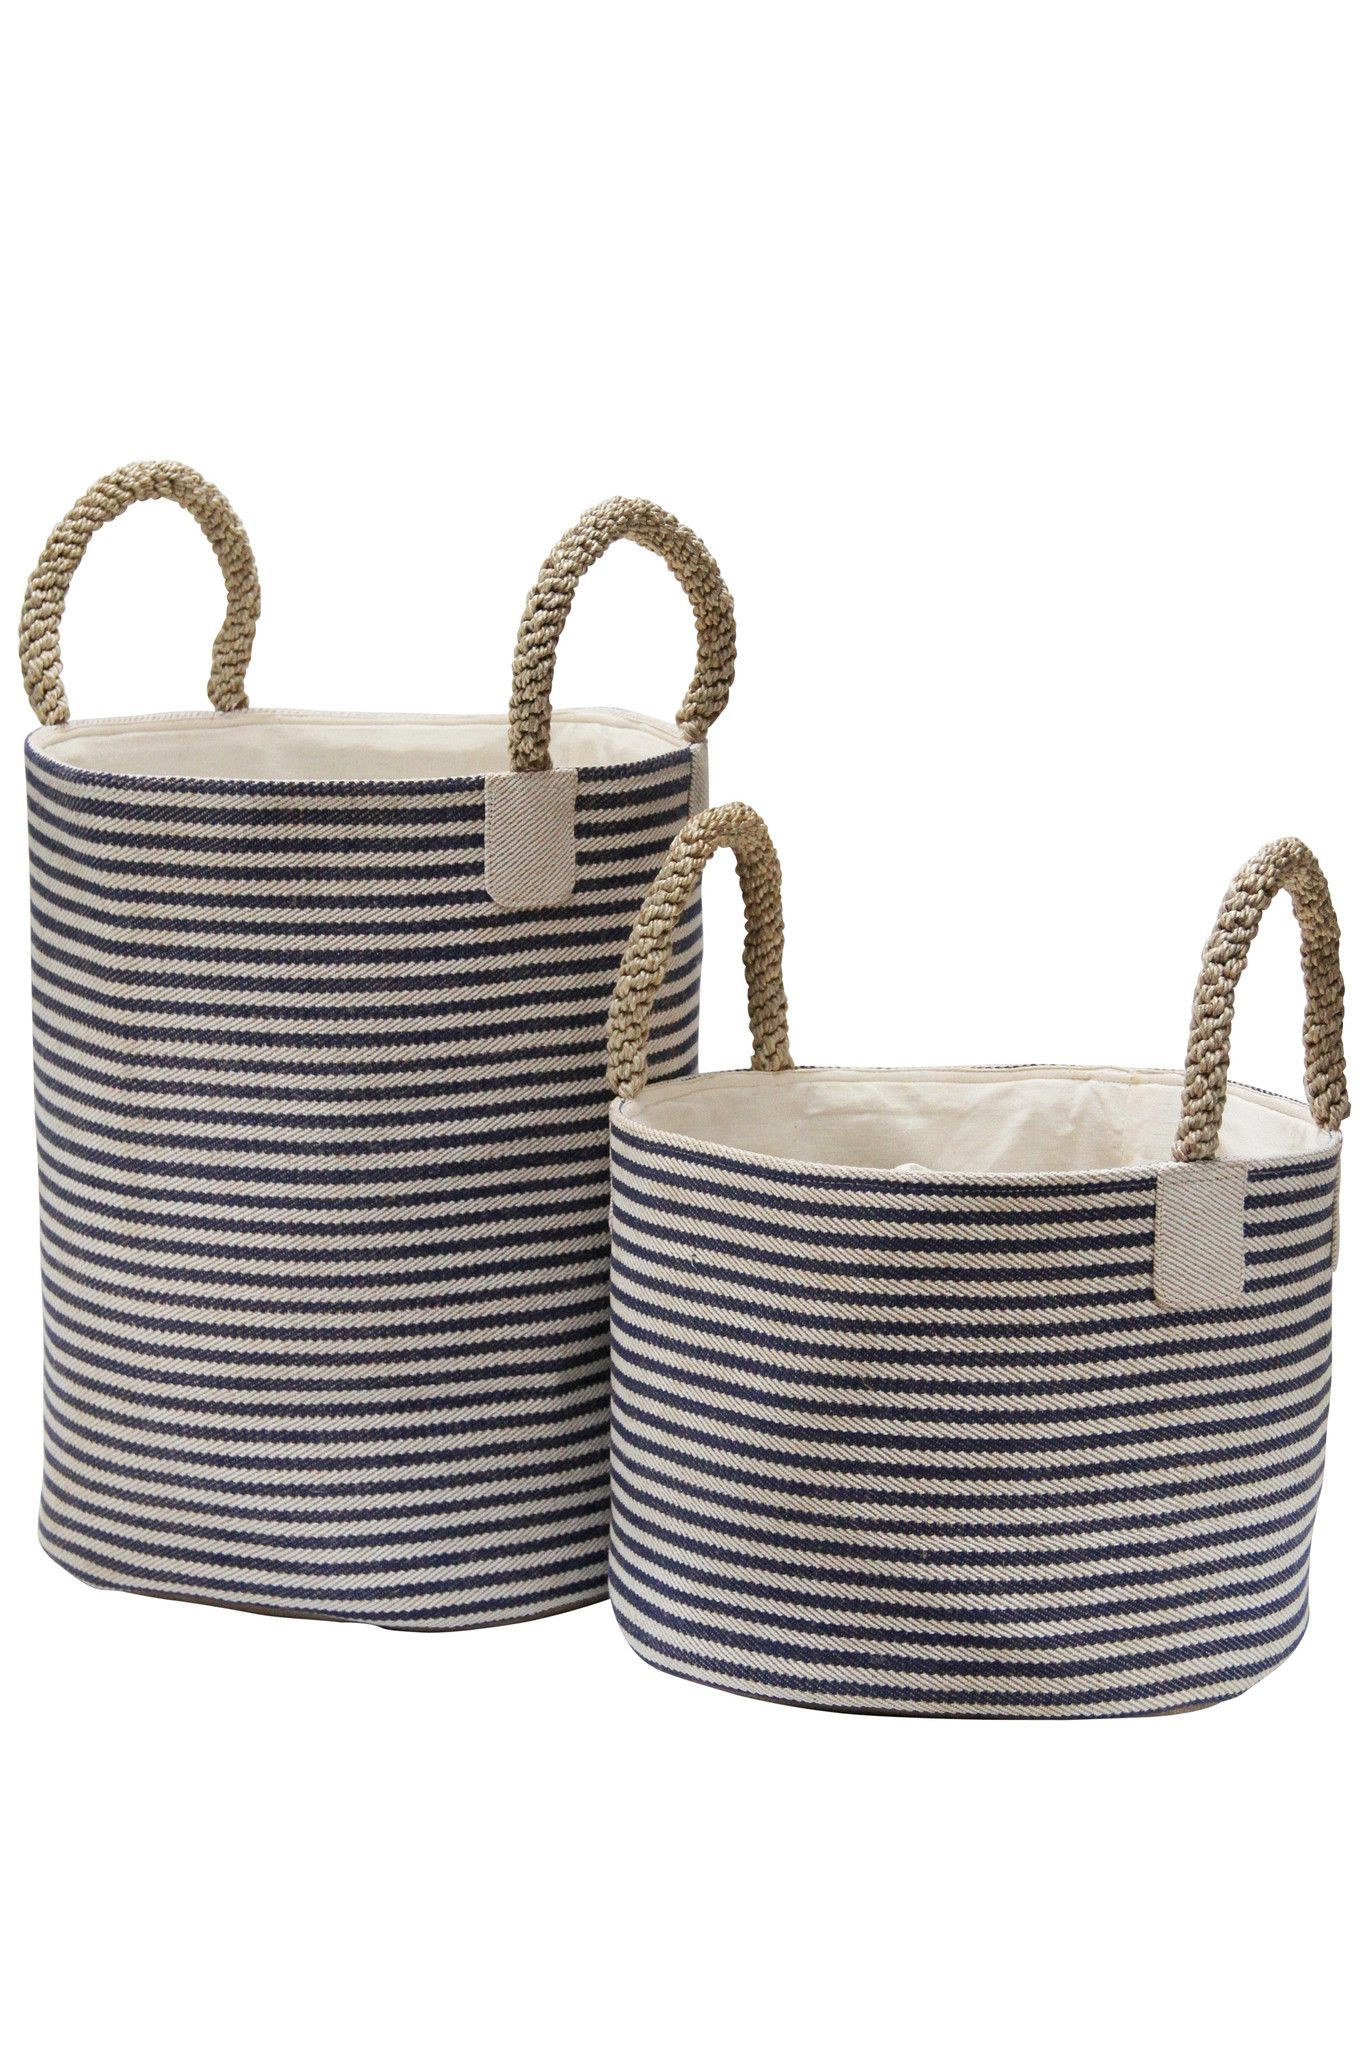 Beautiful Nautical Inspired Collection Of Baskets With Macrame